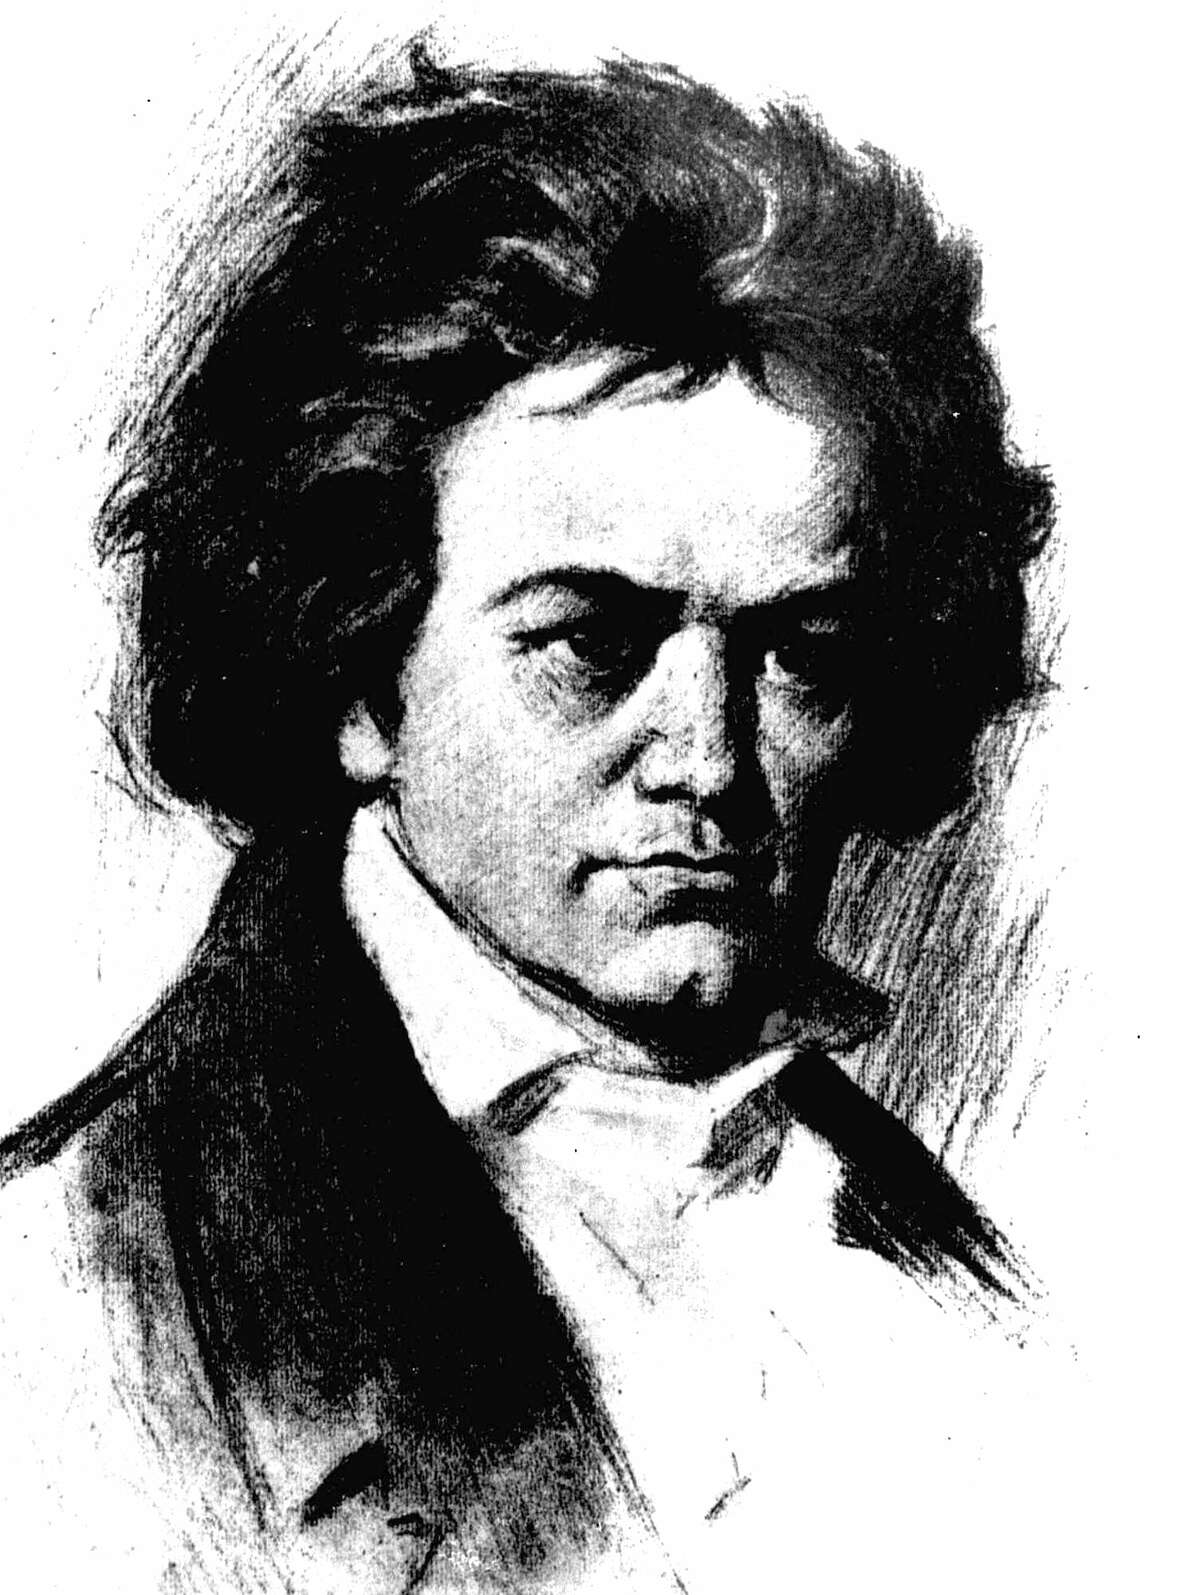 Love life Beethoven had little luck in love. He fell in love with aristocratic women, most notably Josephine Brunsvik, but he was a commoner and not marriage material for them. He never married.